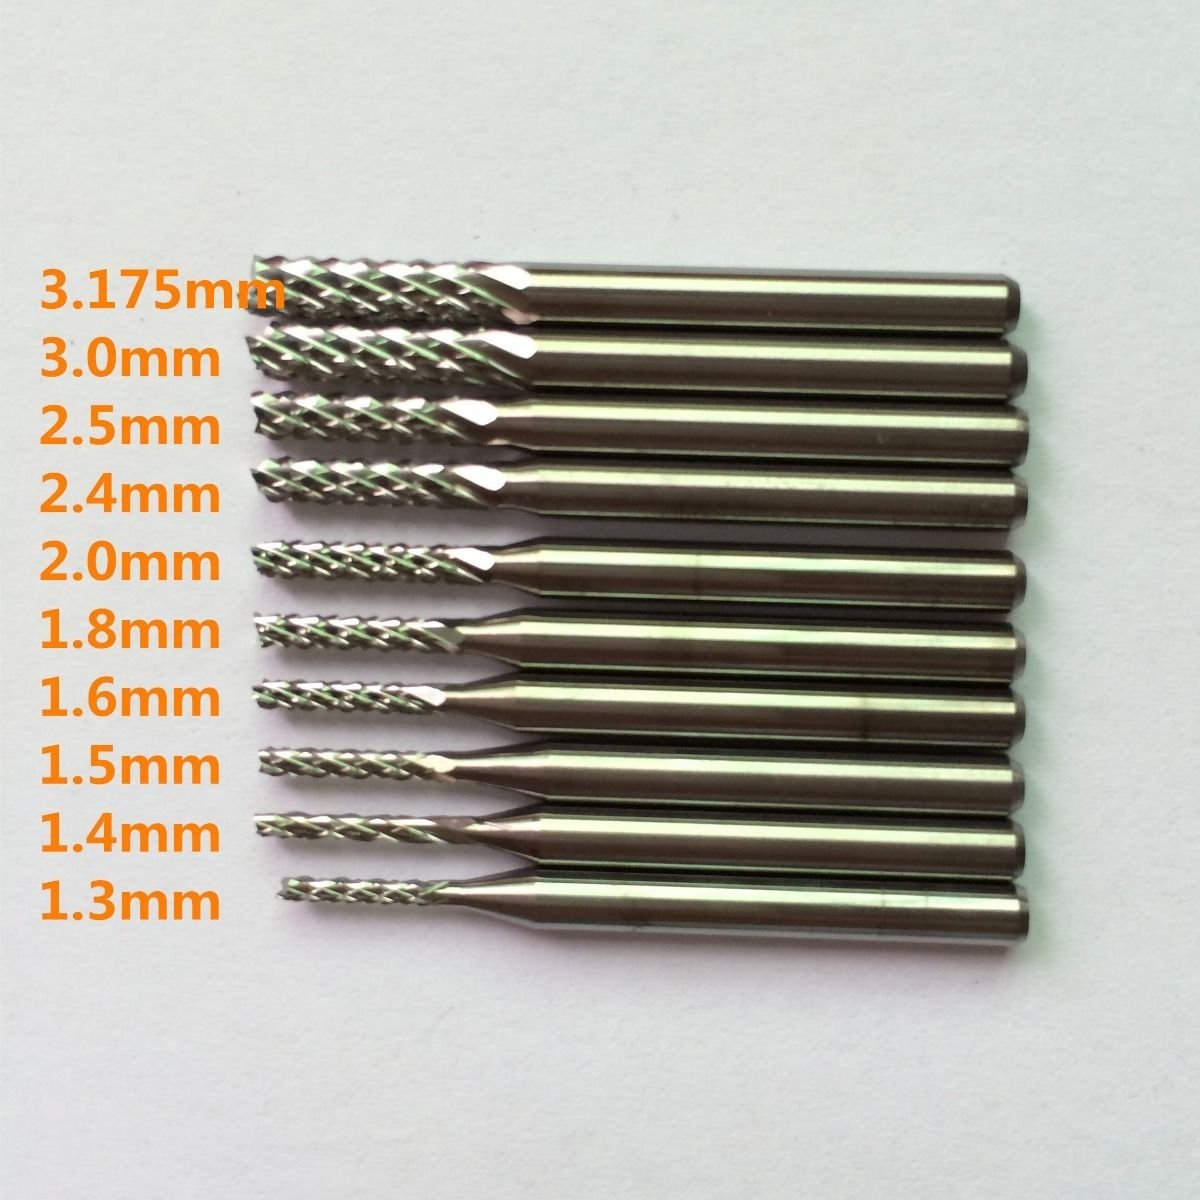 10pcs Carbide End Mill Engraving Bits for CNC PCB Rotary Burrs from1.3 to3.175mm